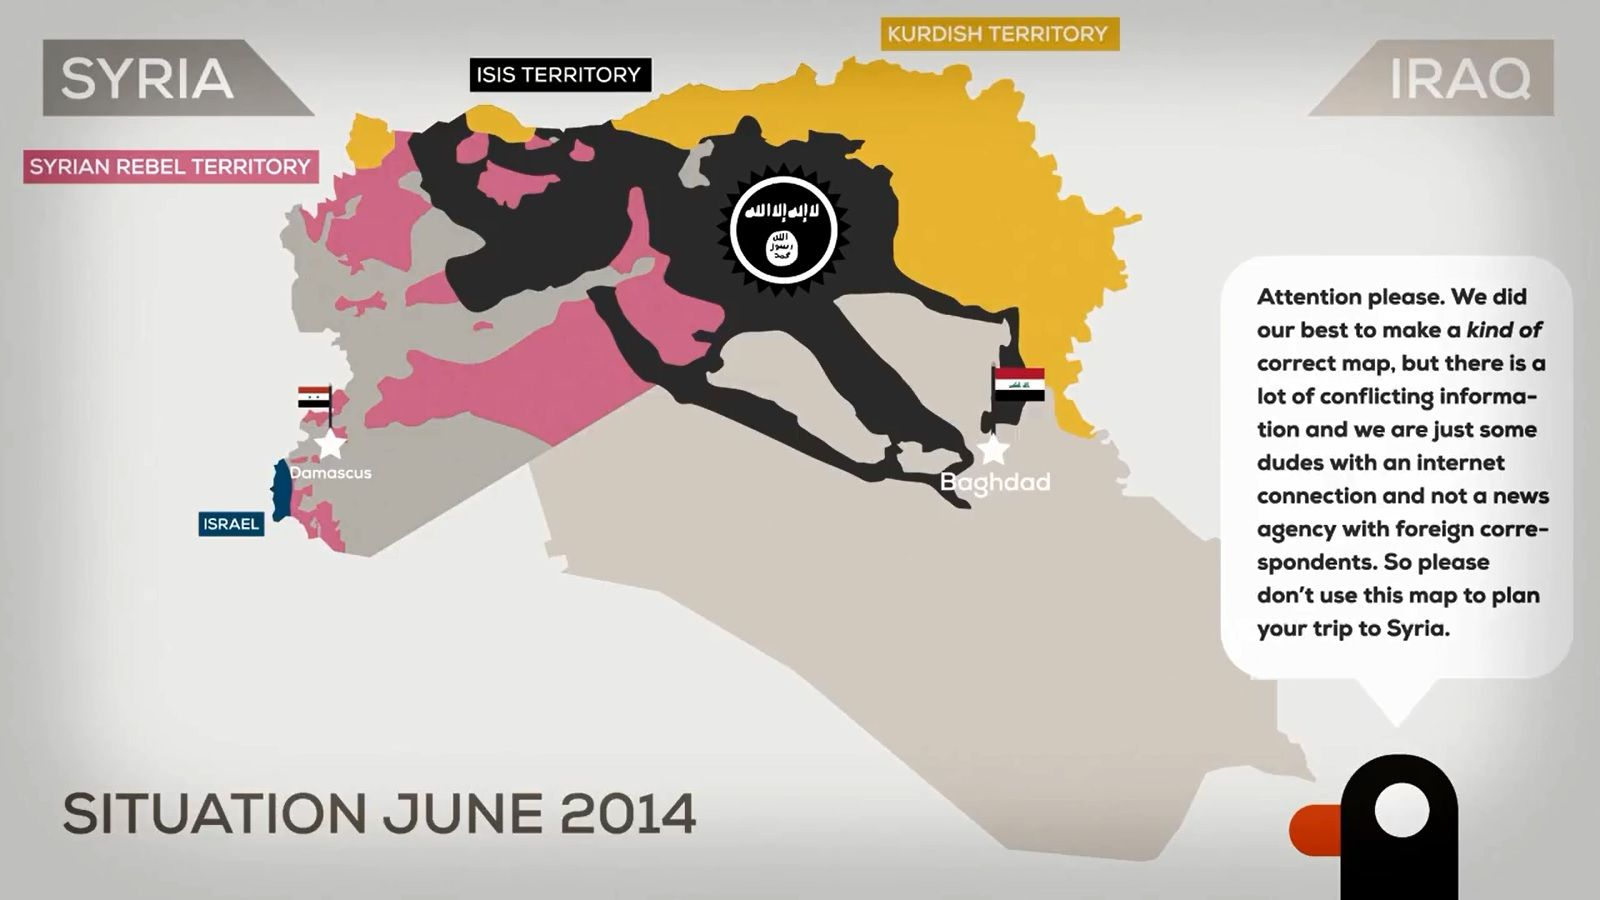 islamic state in iraq and syria essay The islamic state, or isis, is a militant organization that emerged as an offshoot of al qaeda in 2014 it quickly took control of large parts of iraq and syria, raising its black flag in victory.